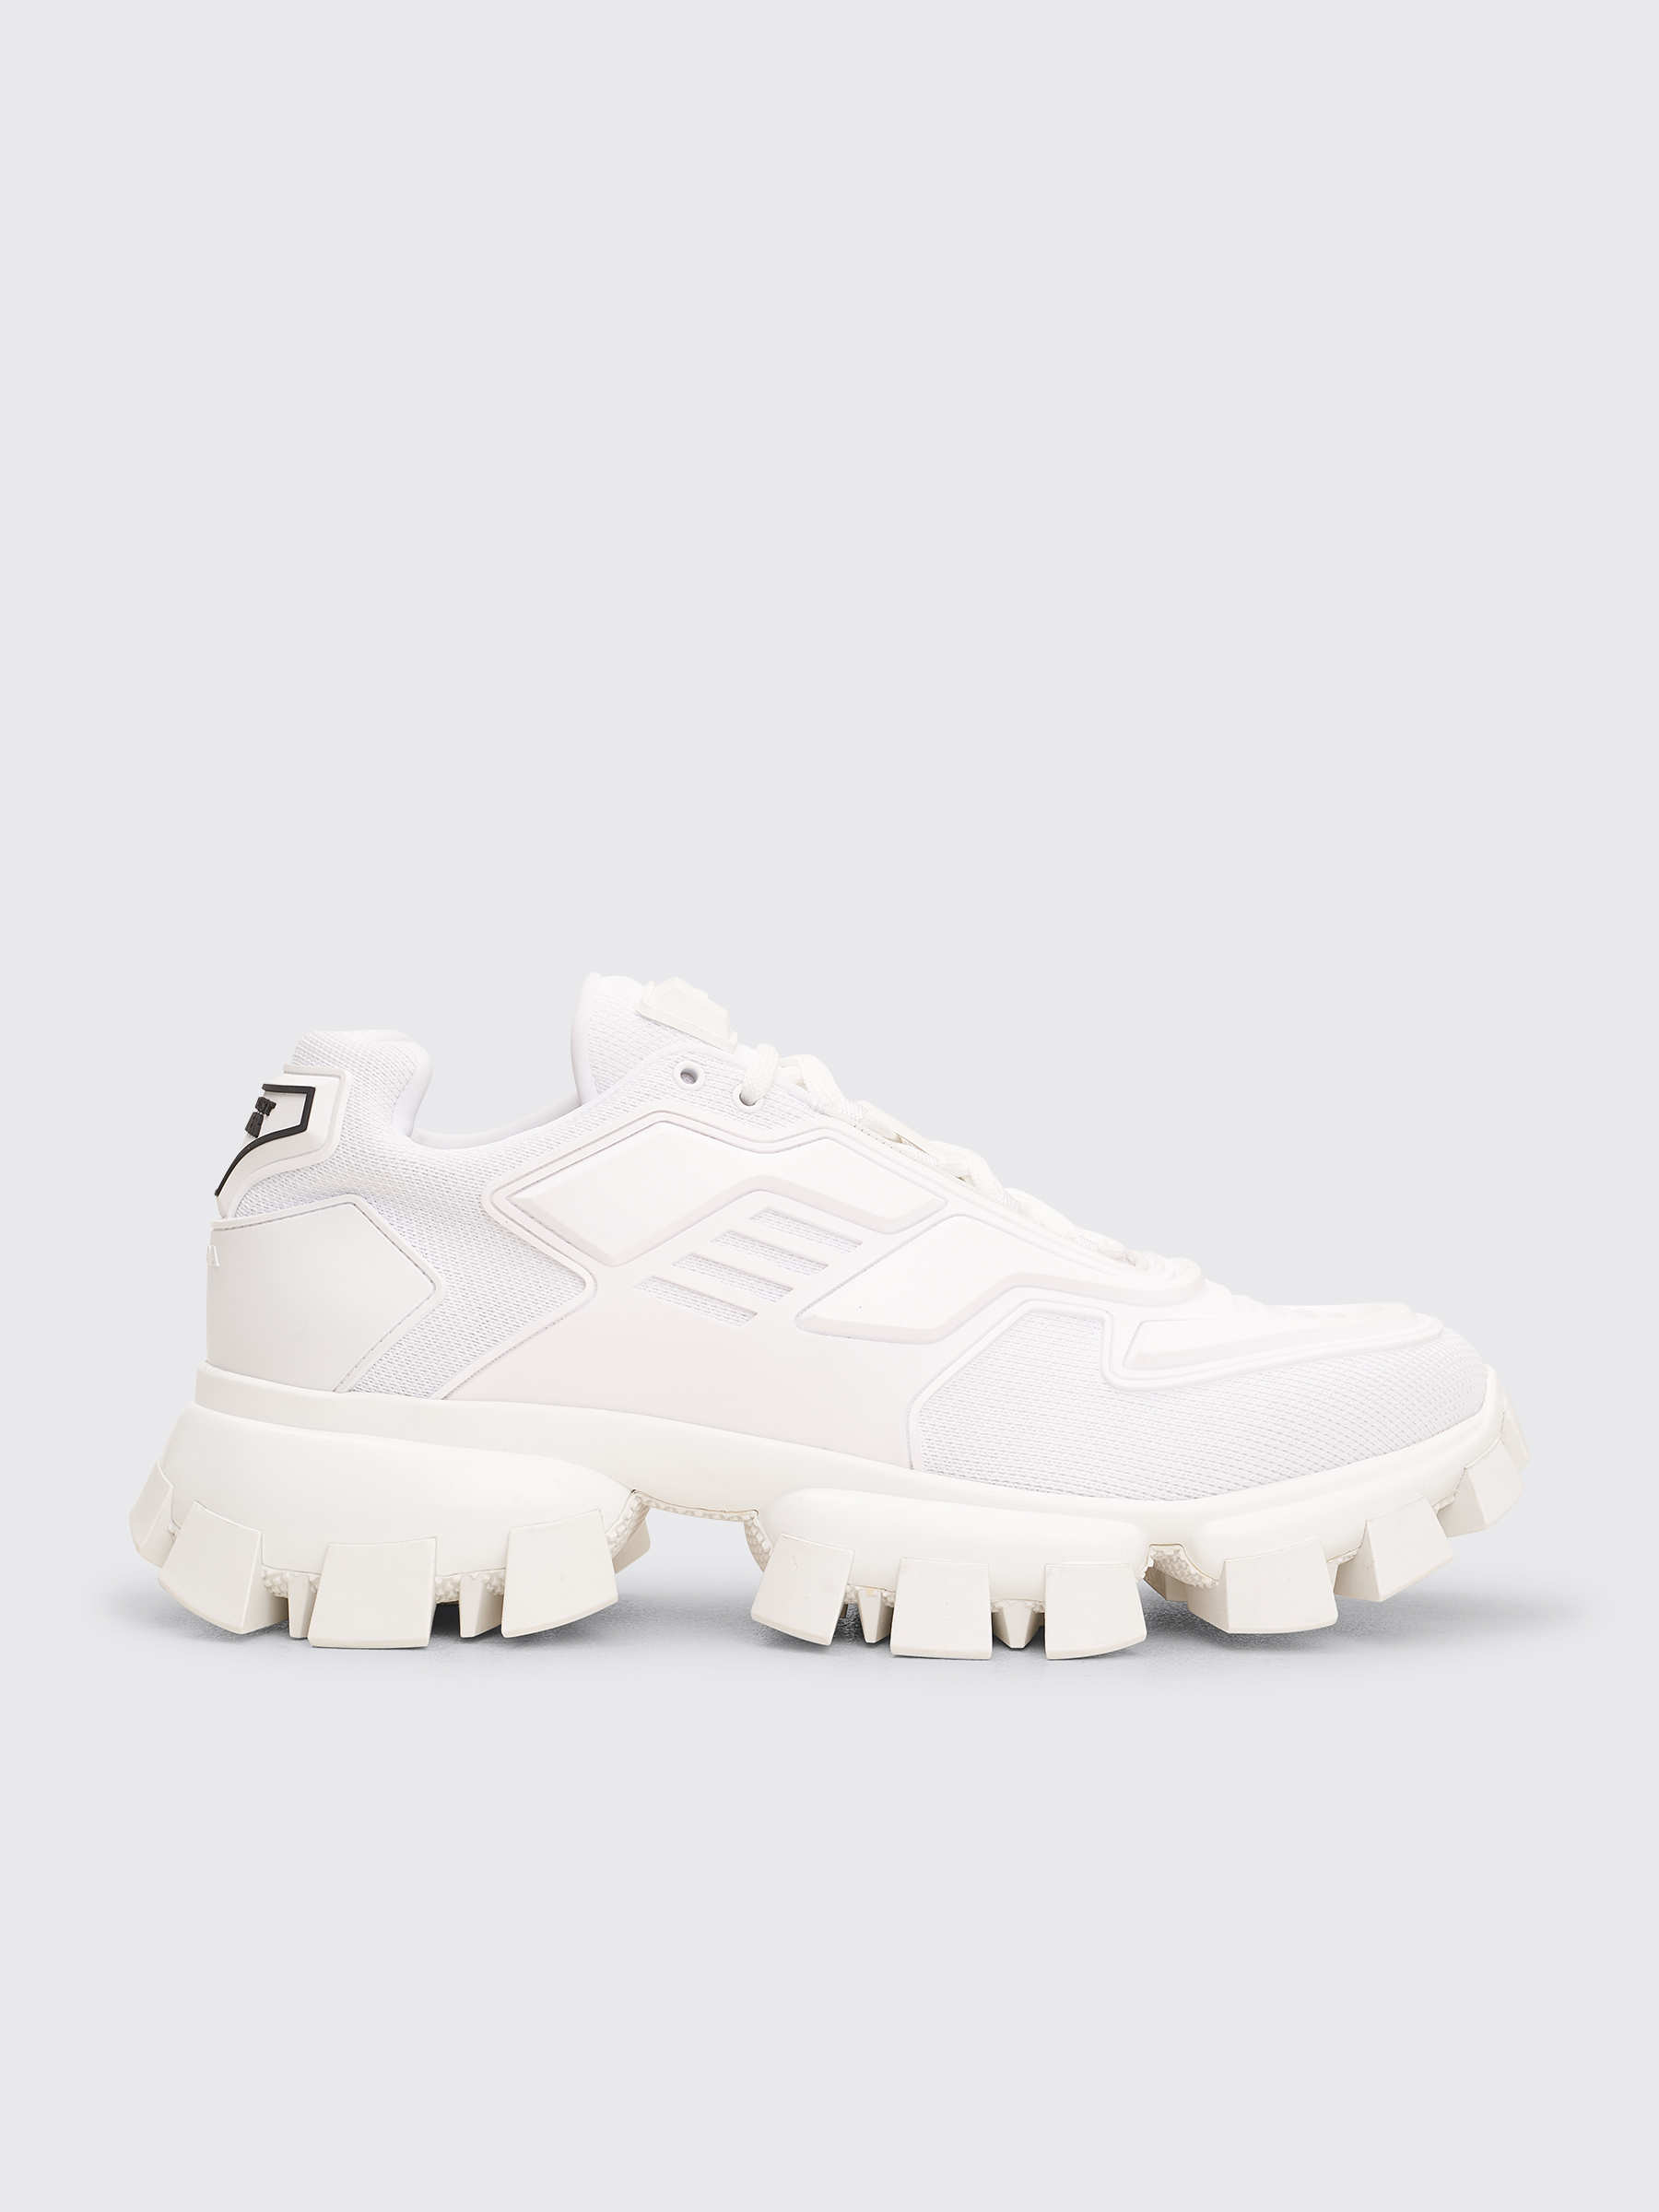 Prada Cloudbust Thunder Knit Sneakers White